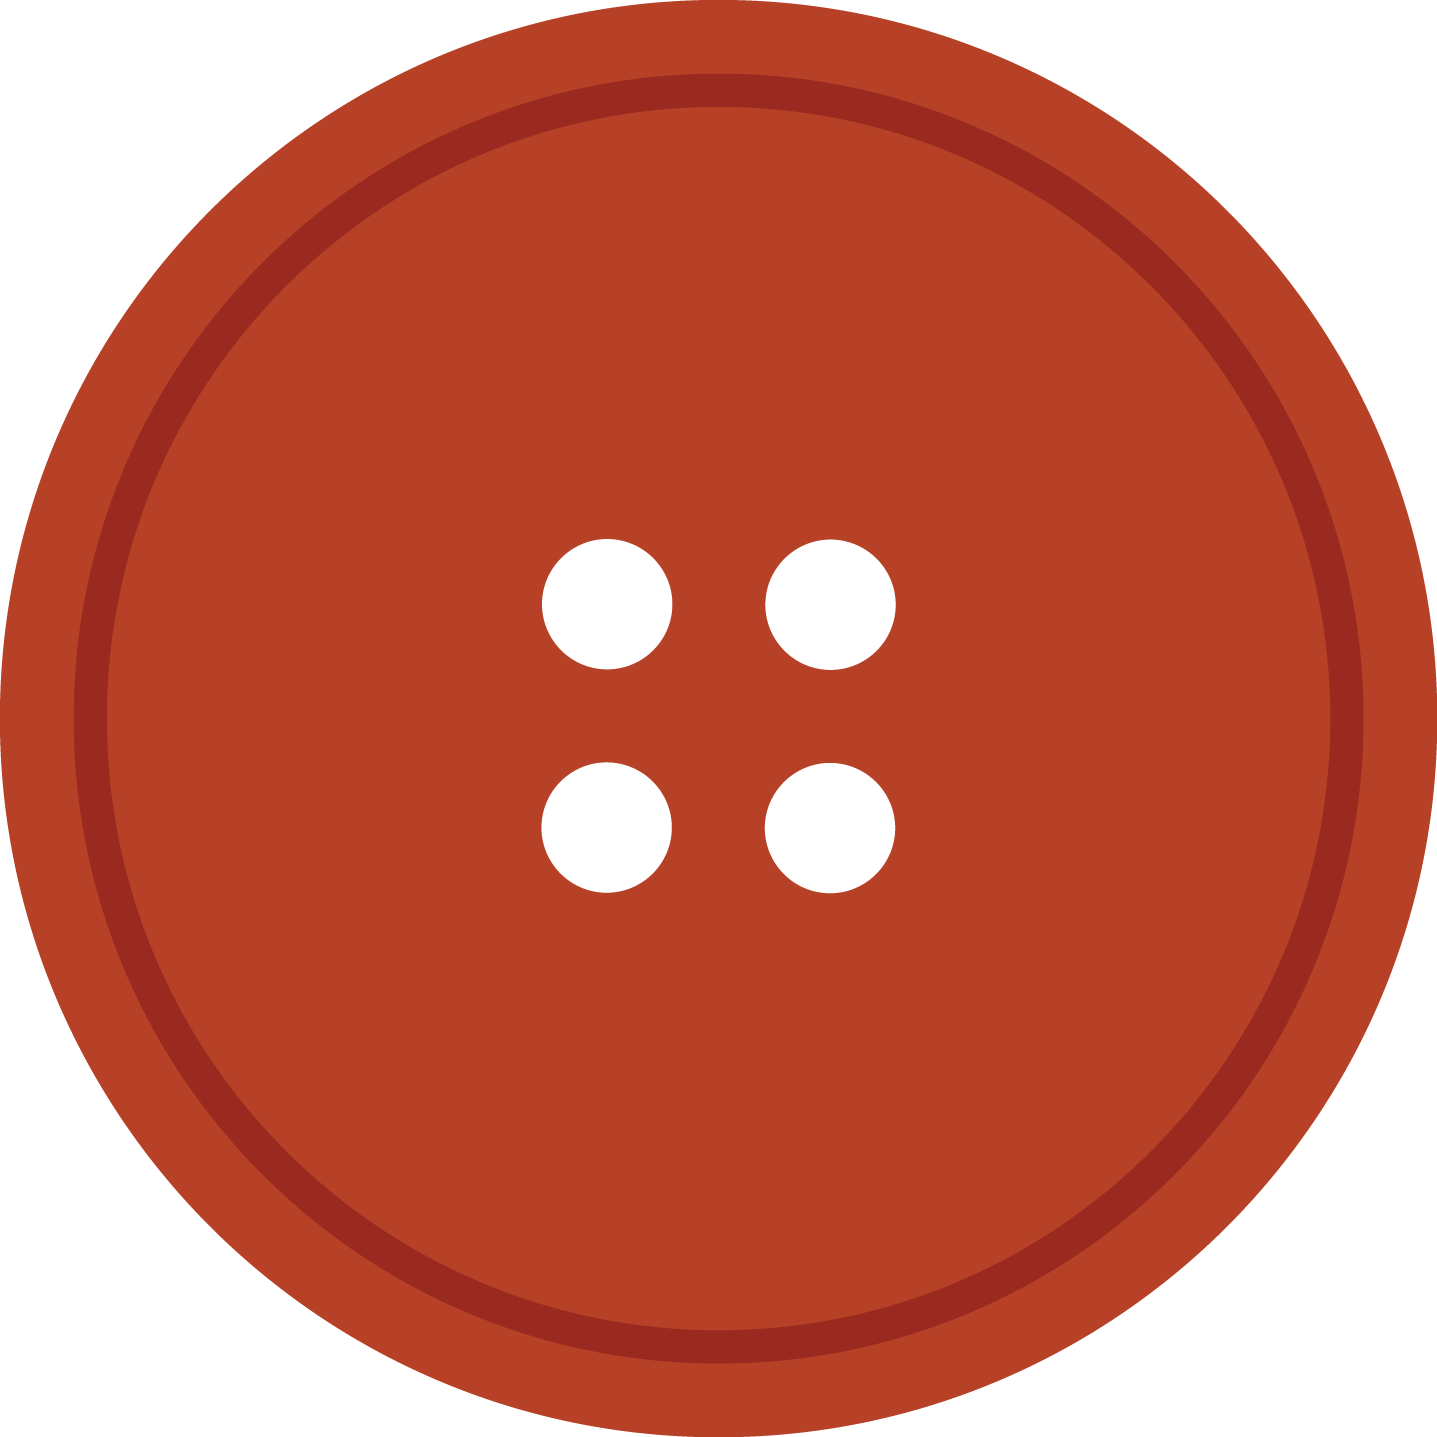 Clothes button png incep. Number 4 clipart bright